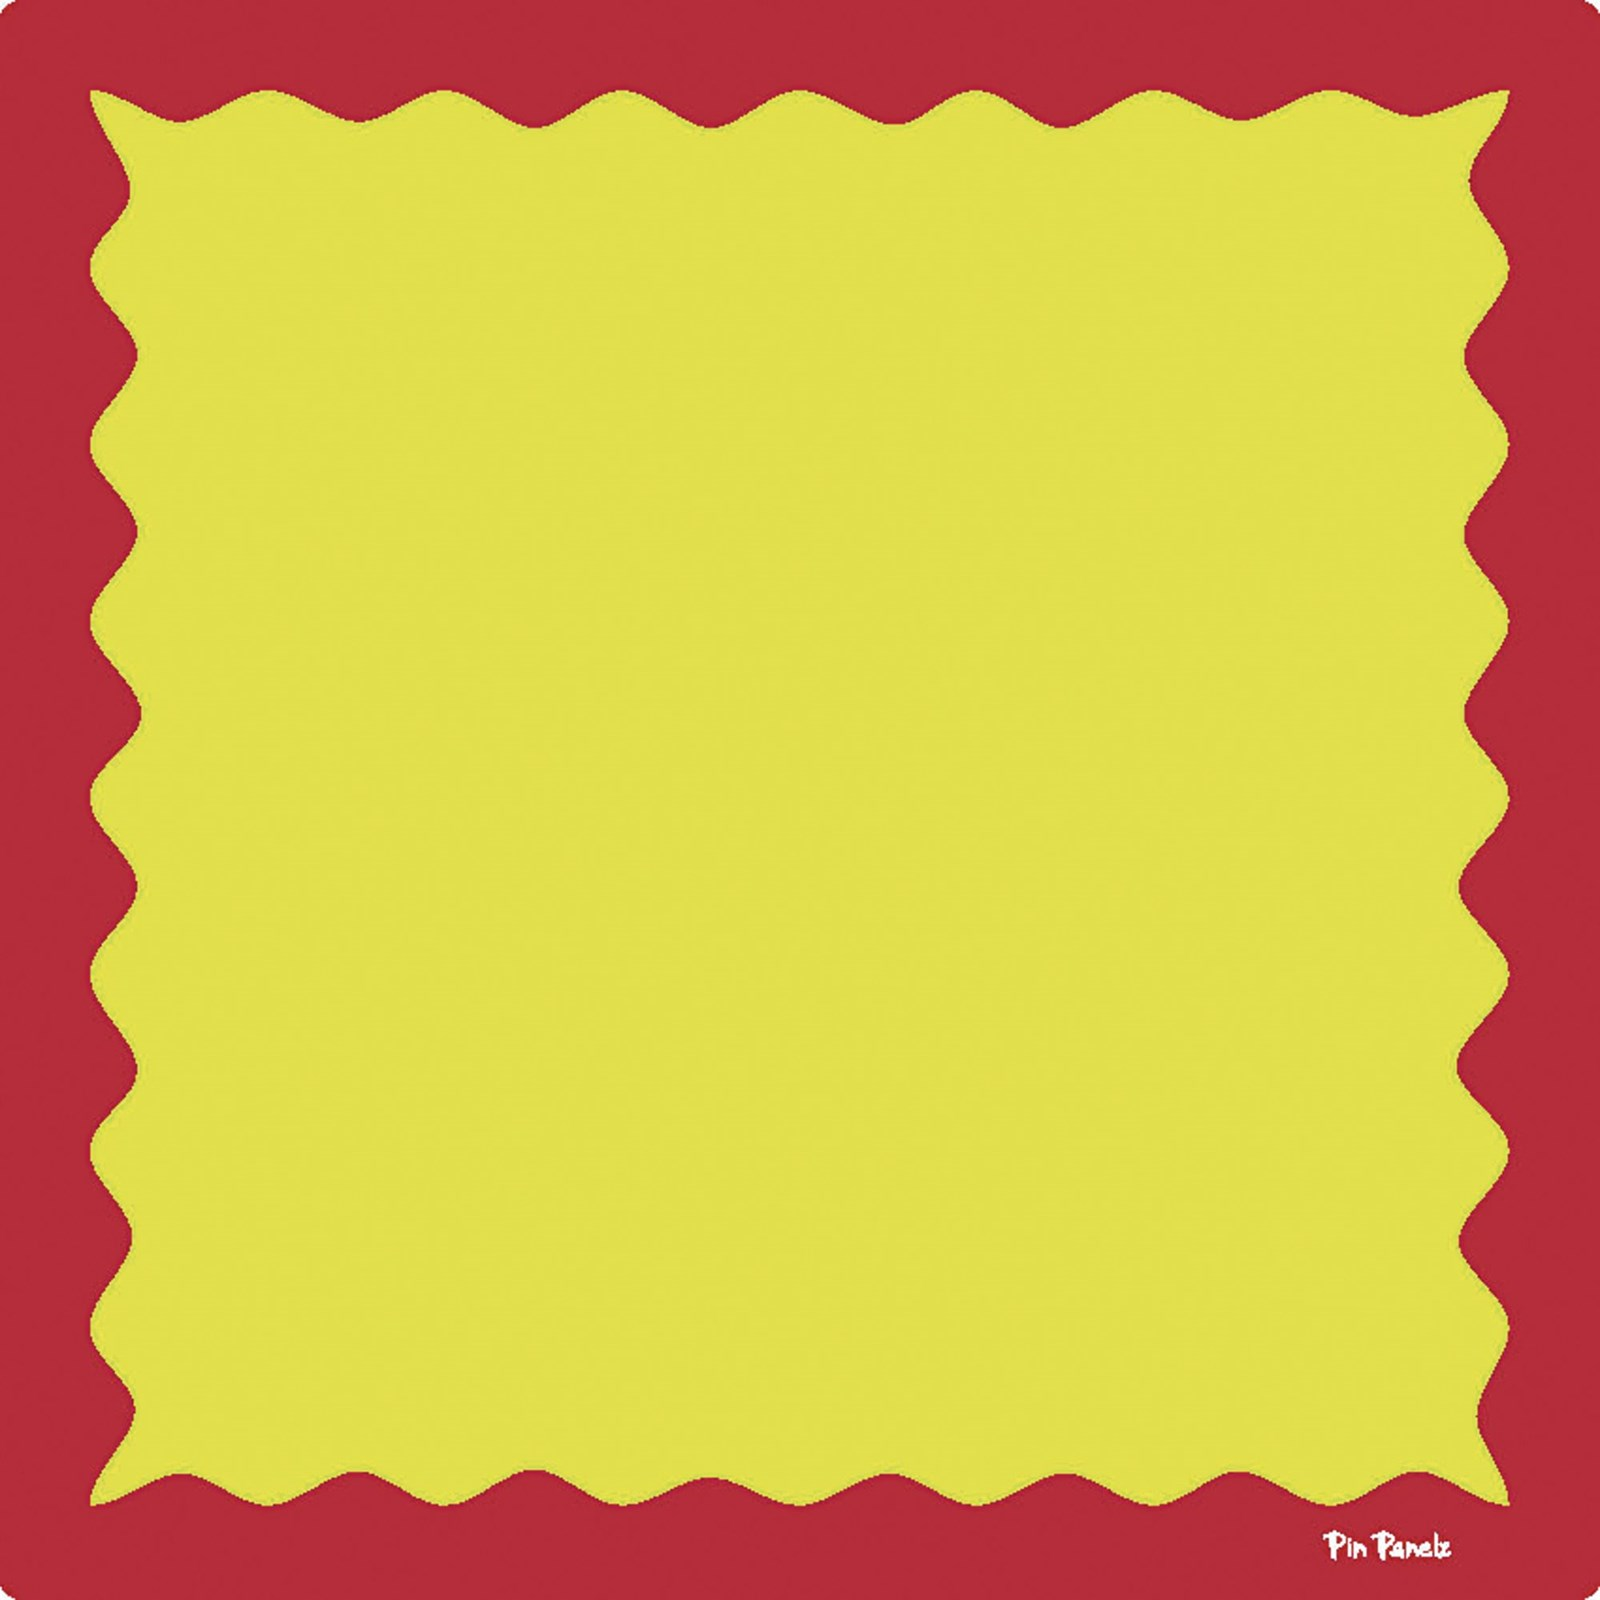 Funky Pin Panelz Red/Yellow - W900 x H900mm